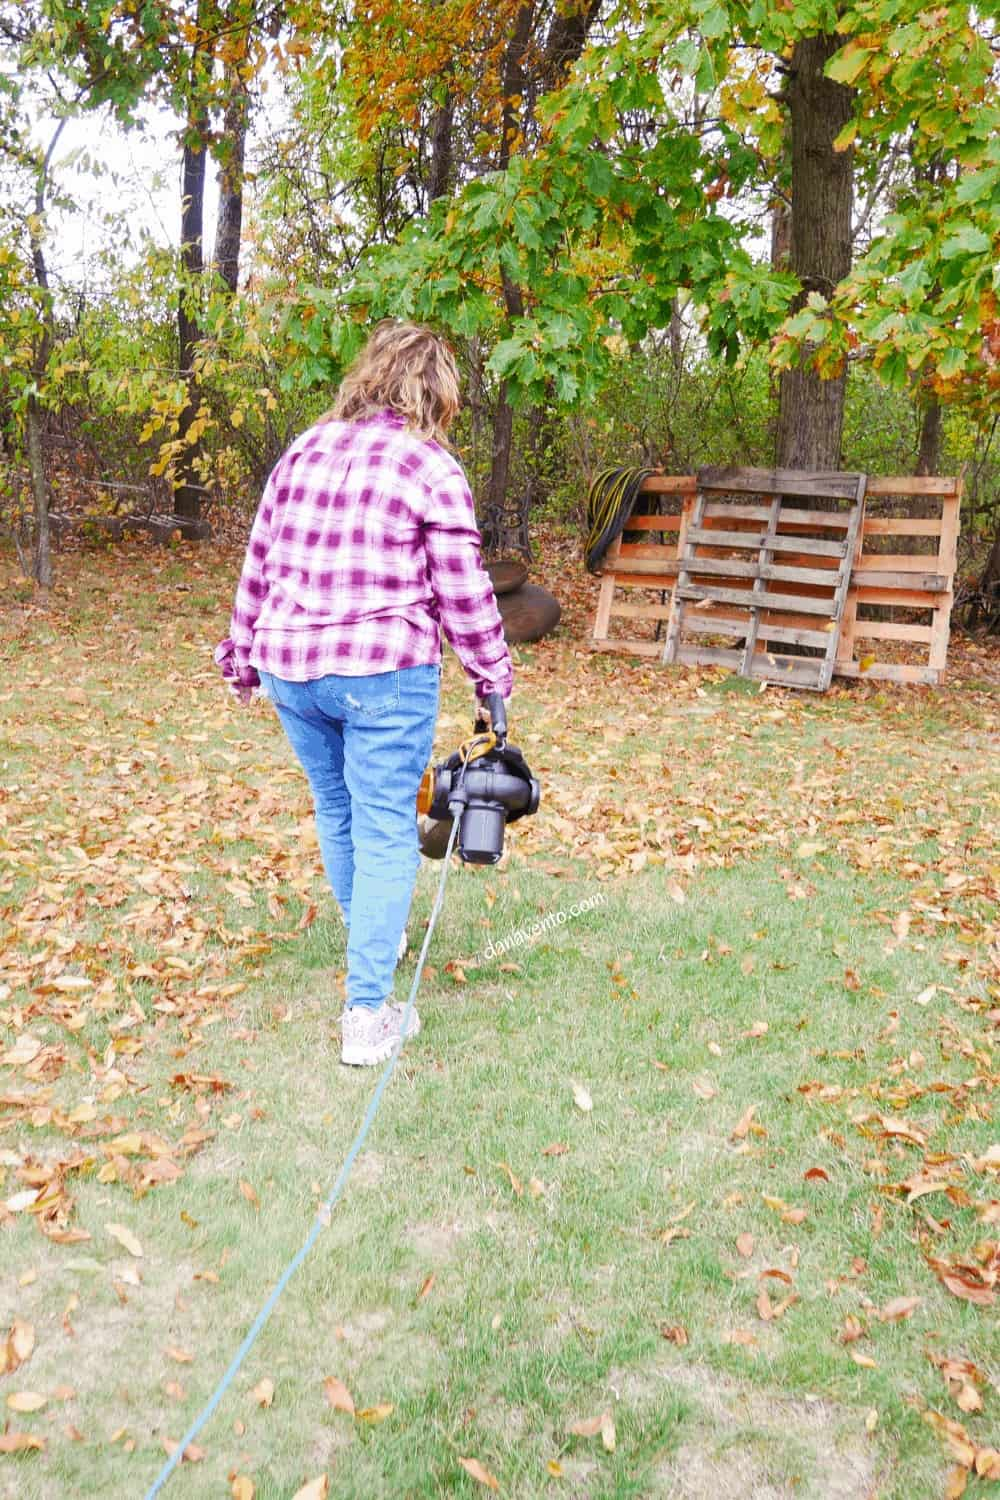 clearing out leaves in the yard